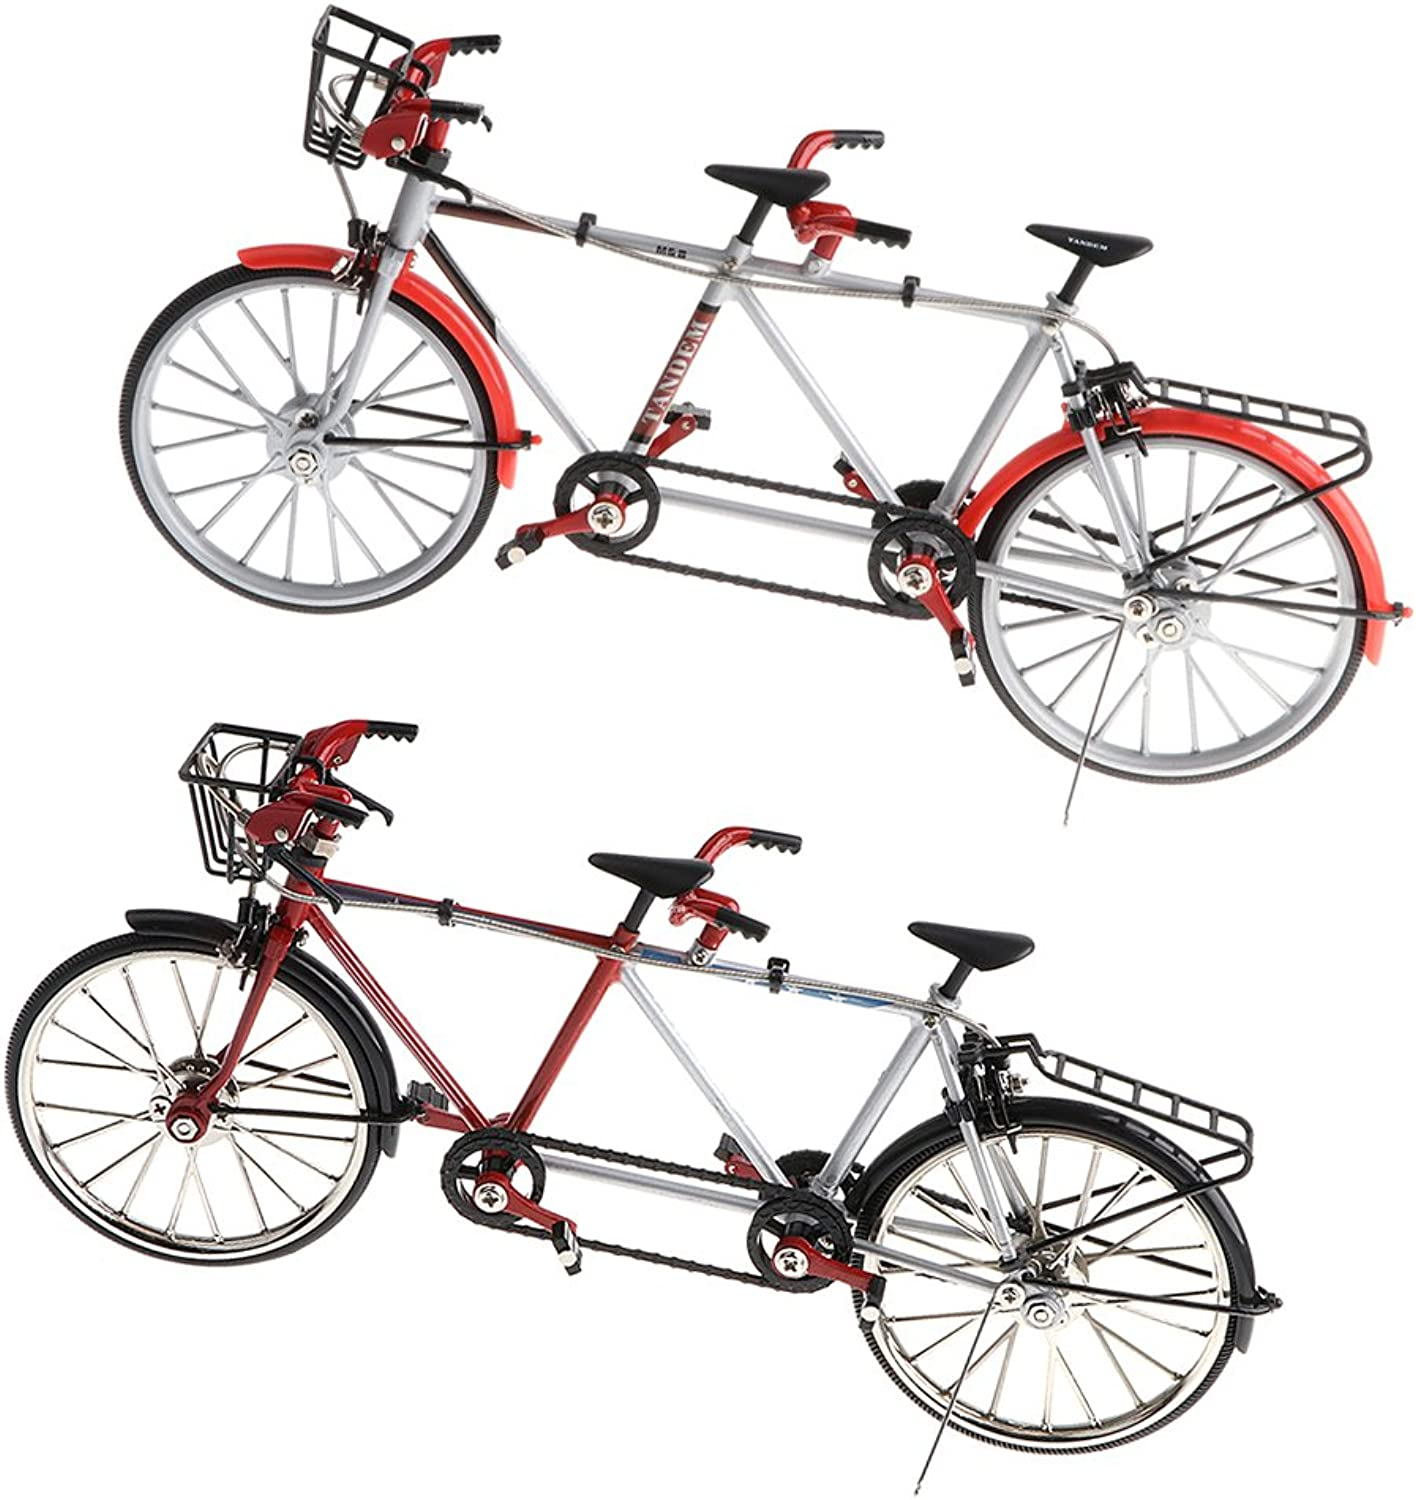 Baoblaze 2pcs 1 10 Scale Alloy Diecast Racing Racing Racing Tandem Bike Showcase Model Bicycle Toy Desk Crafts Collectibles ef6335